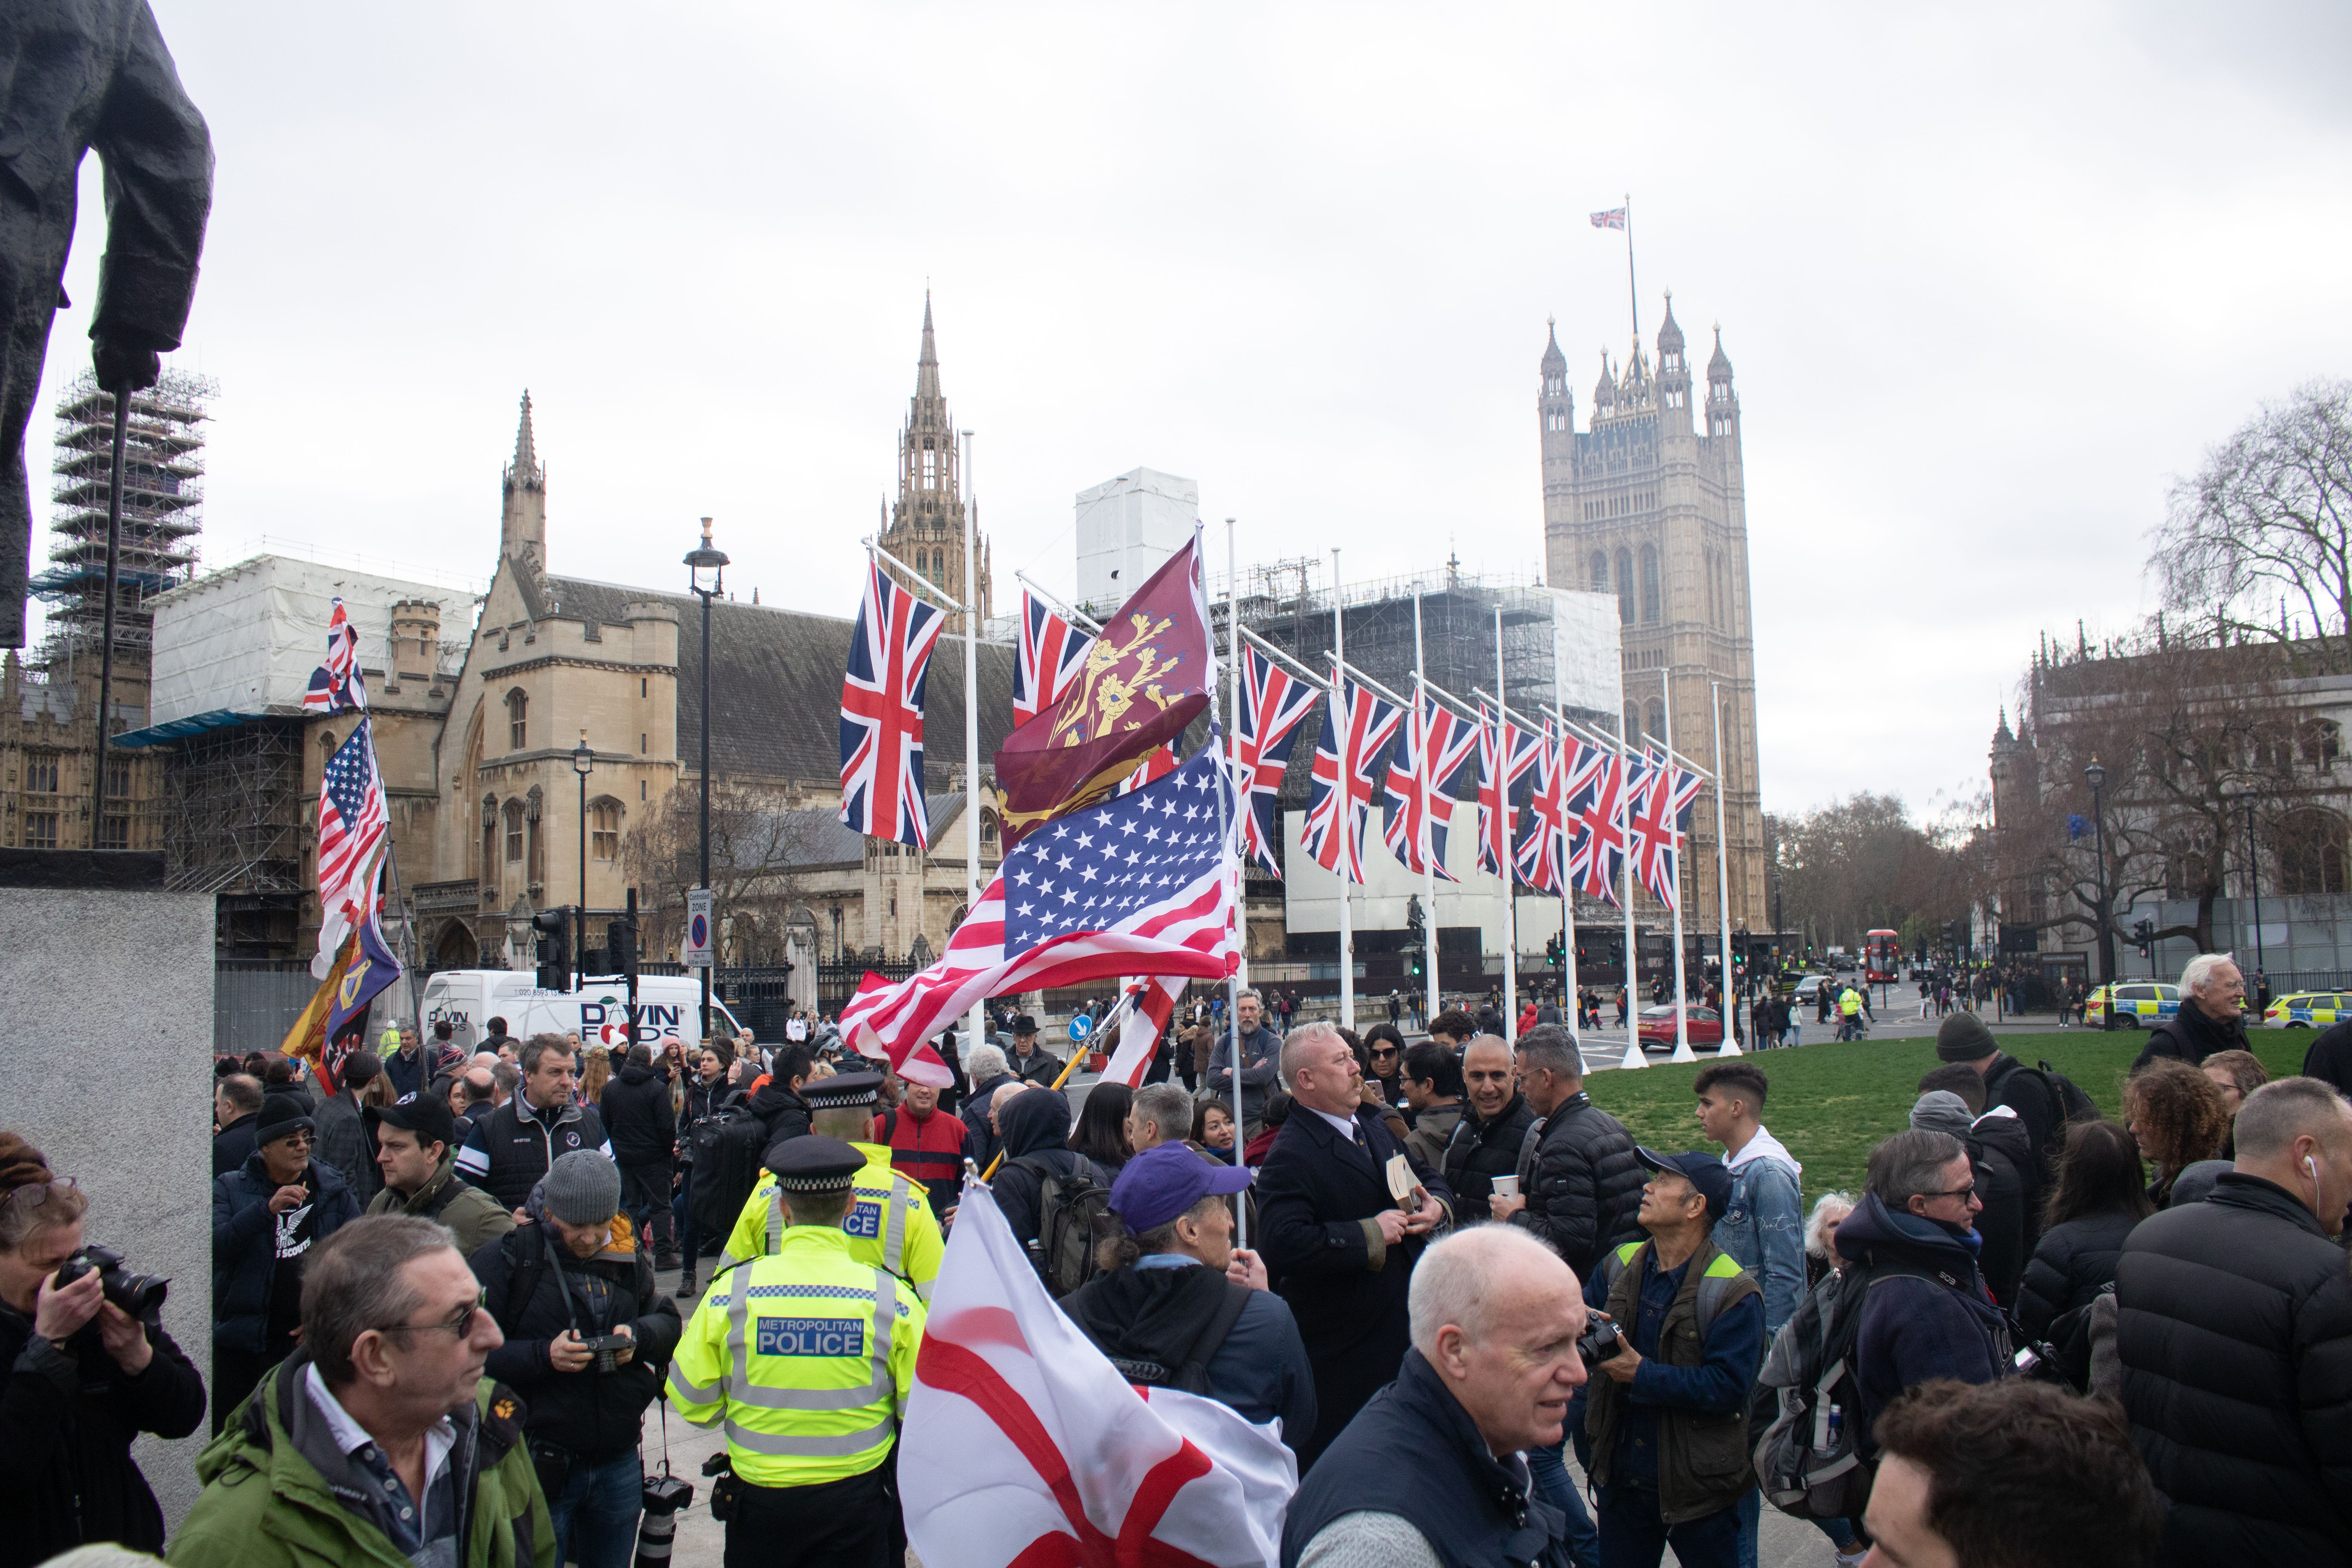 Brexit supporters gather in Parliament Square